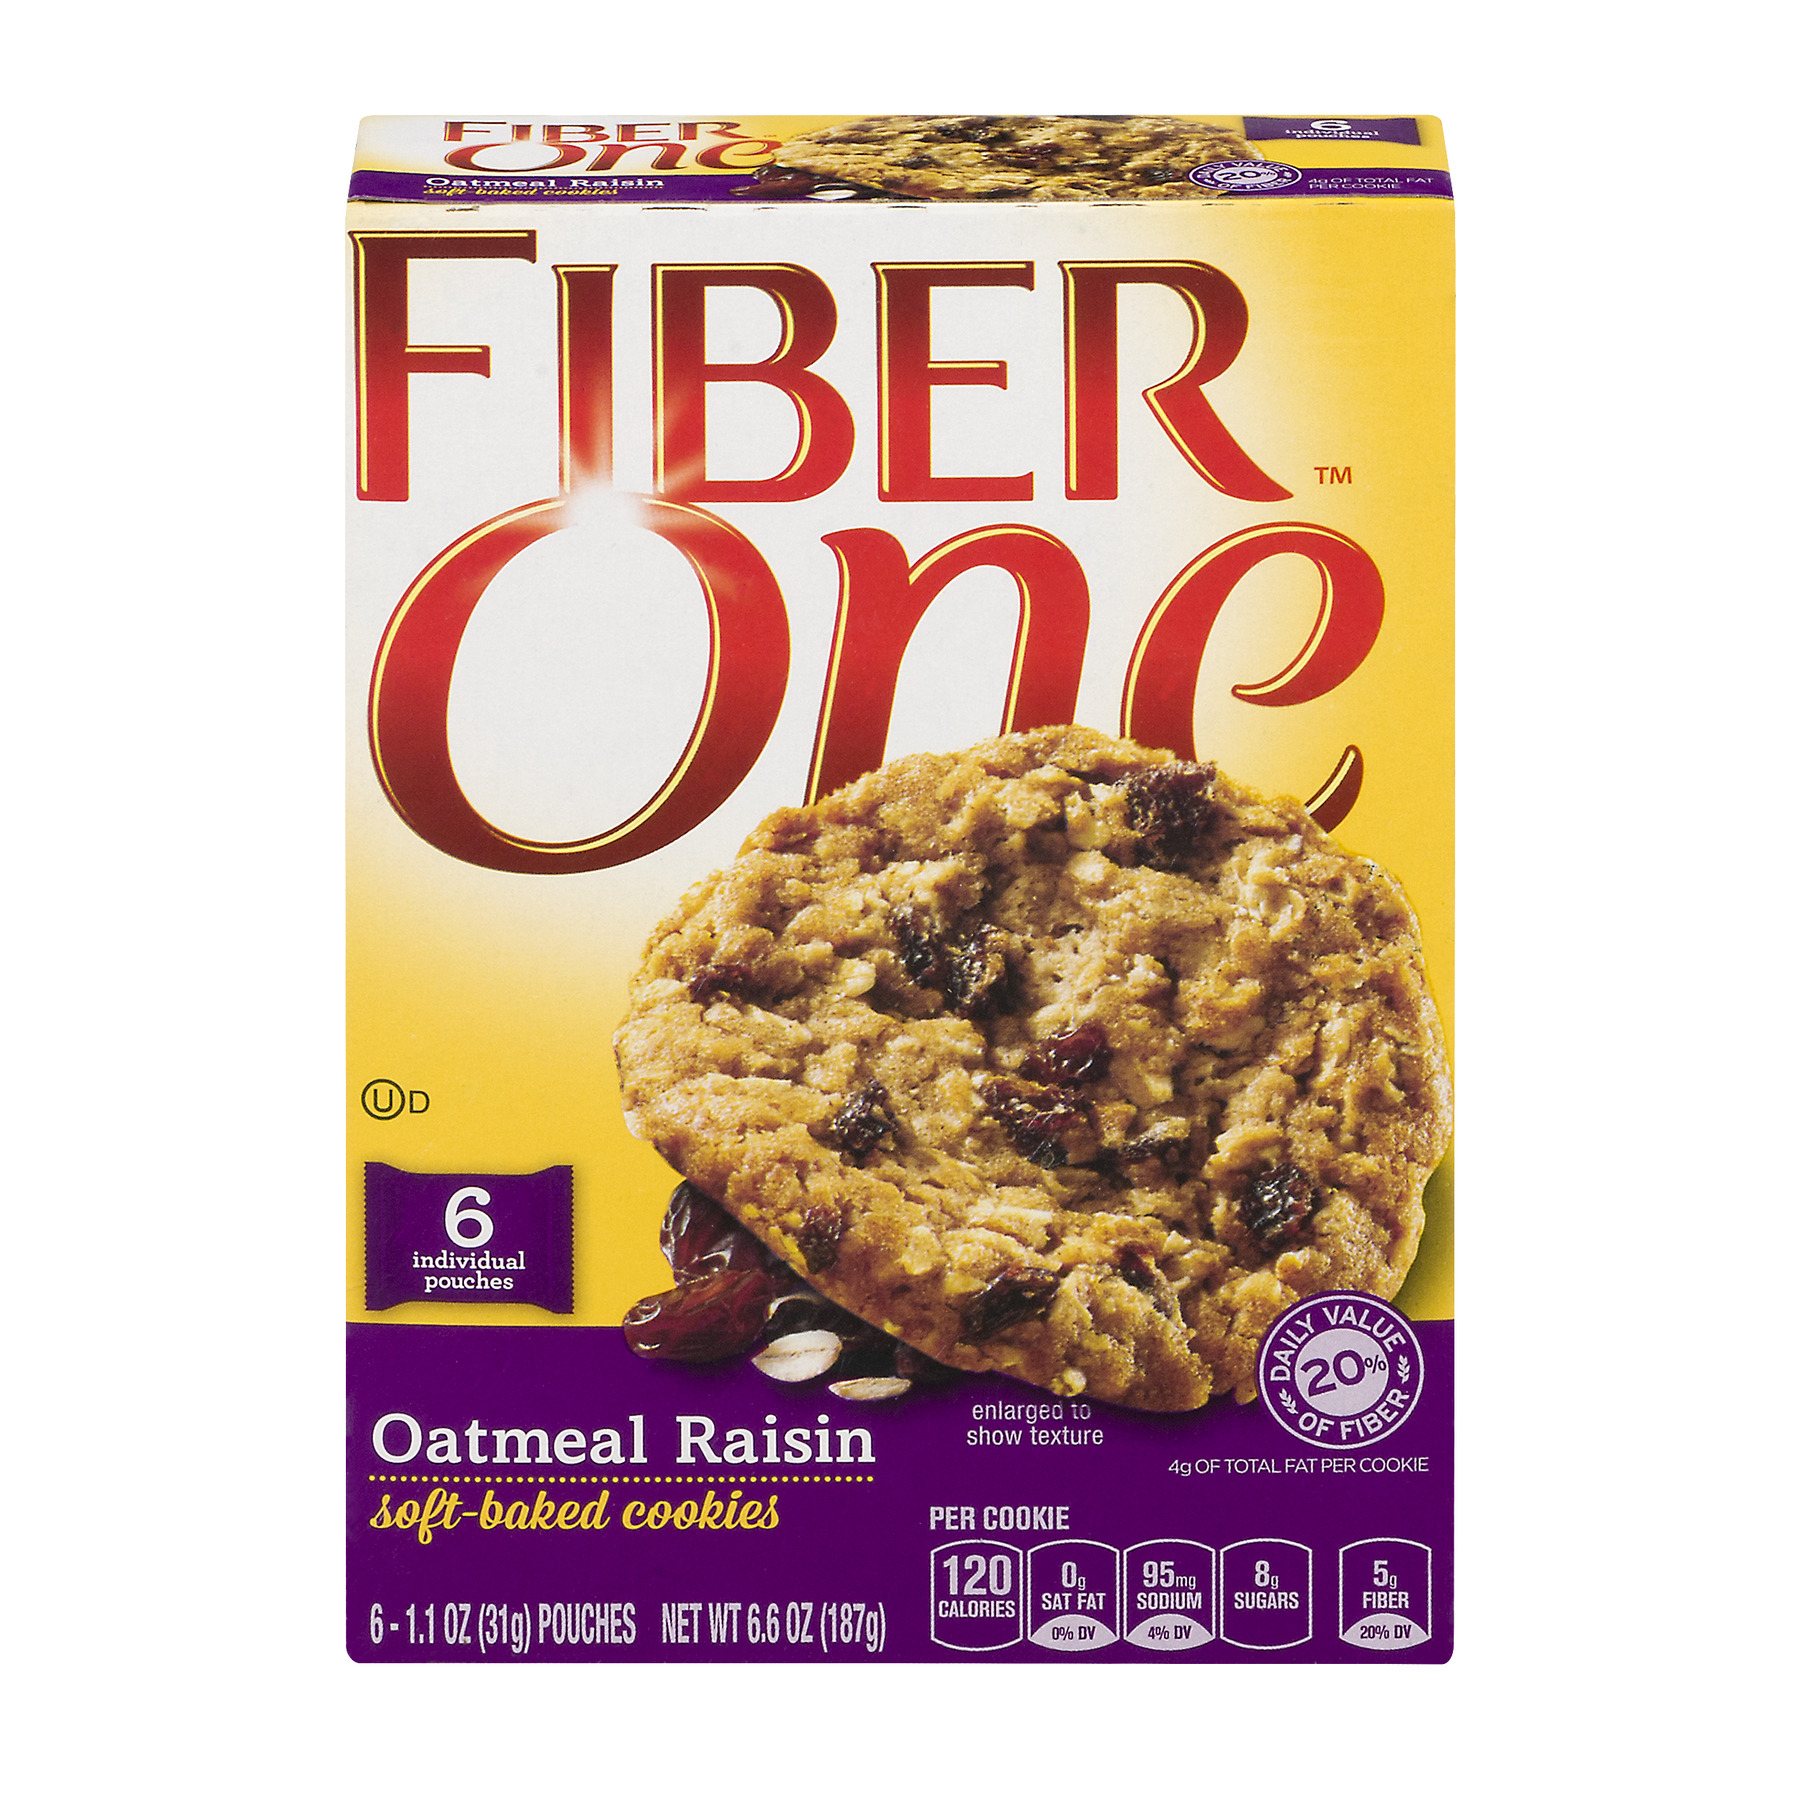 Fiber One Oatmeal Raisin Soft-Baked Cookie, 6.6 oz